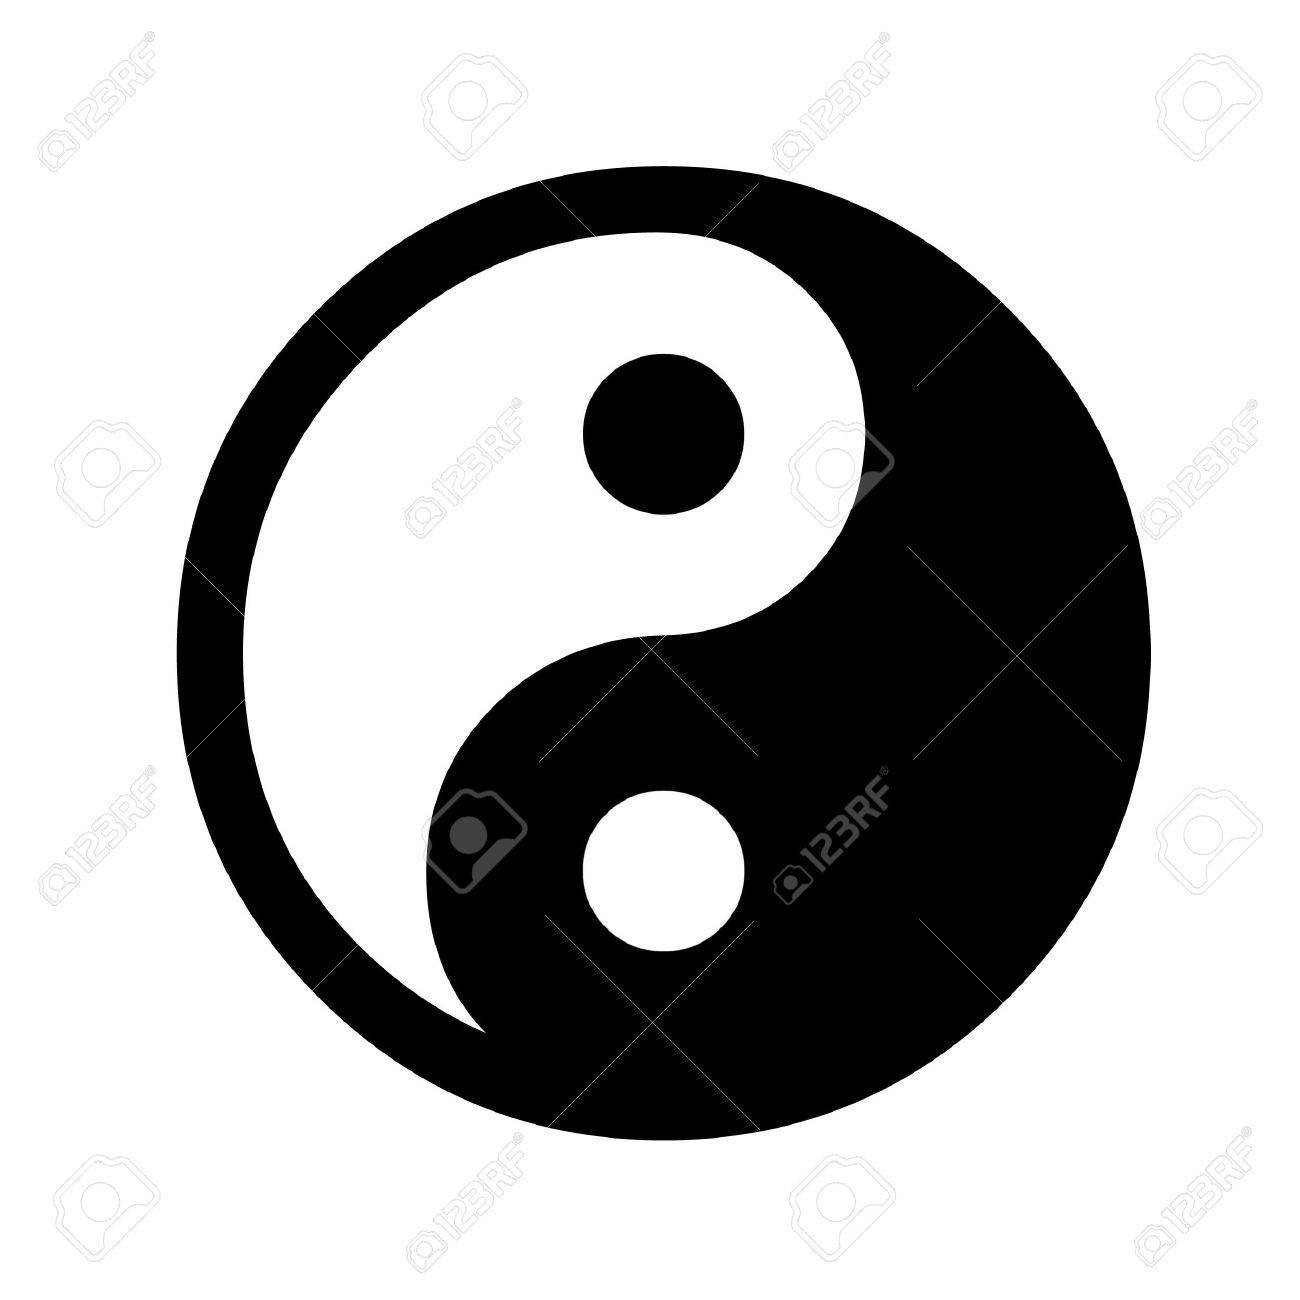 Tao symbol stock photo picture and royalty free image image 949498 tao symbol stock photo 949498 buycottarizona Images